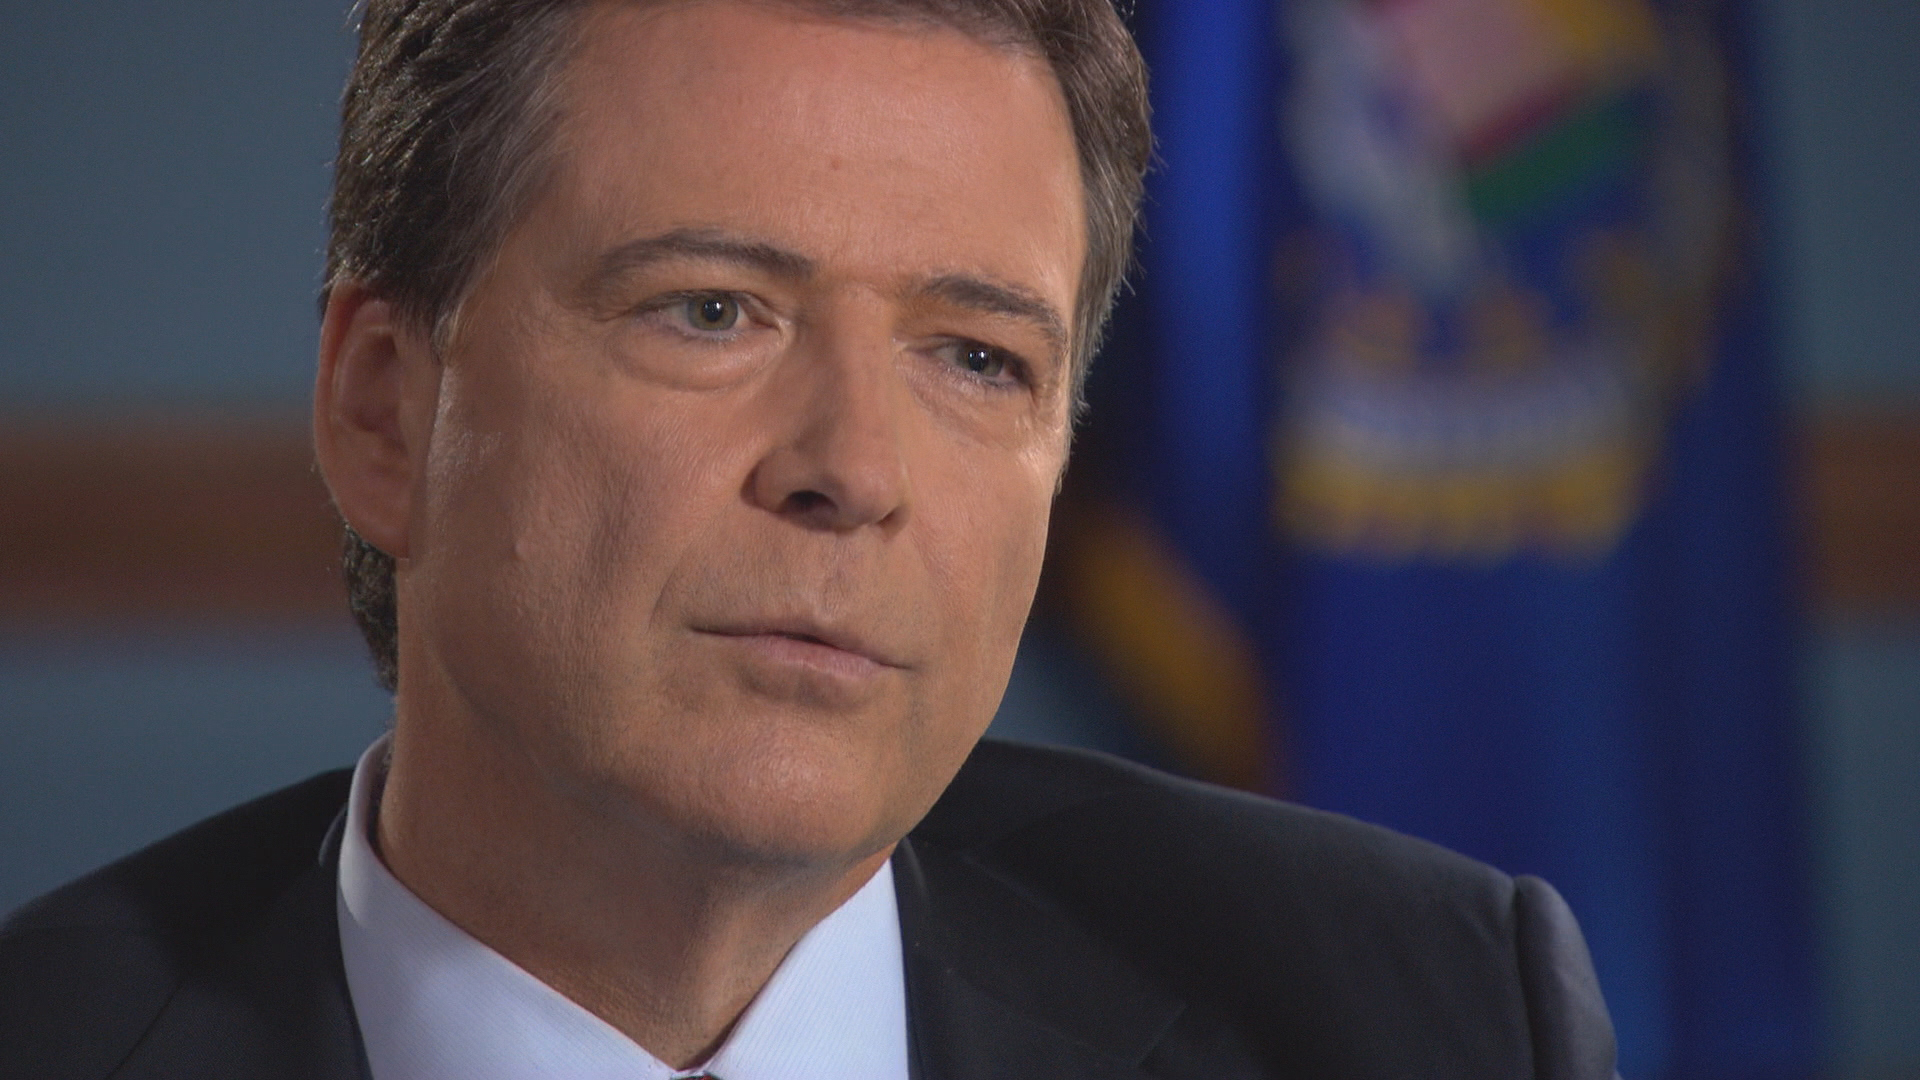 2014 An Interview With Fbi Director James Comey